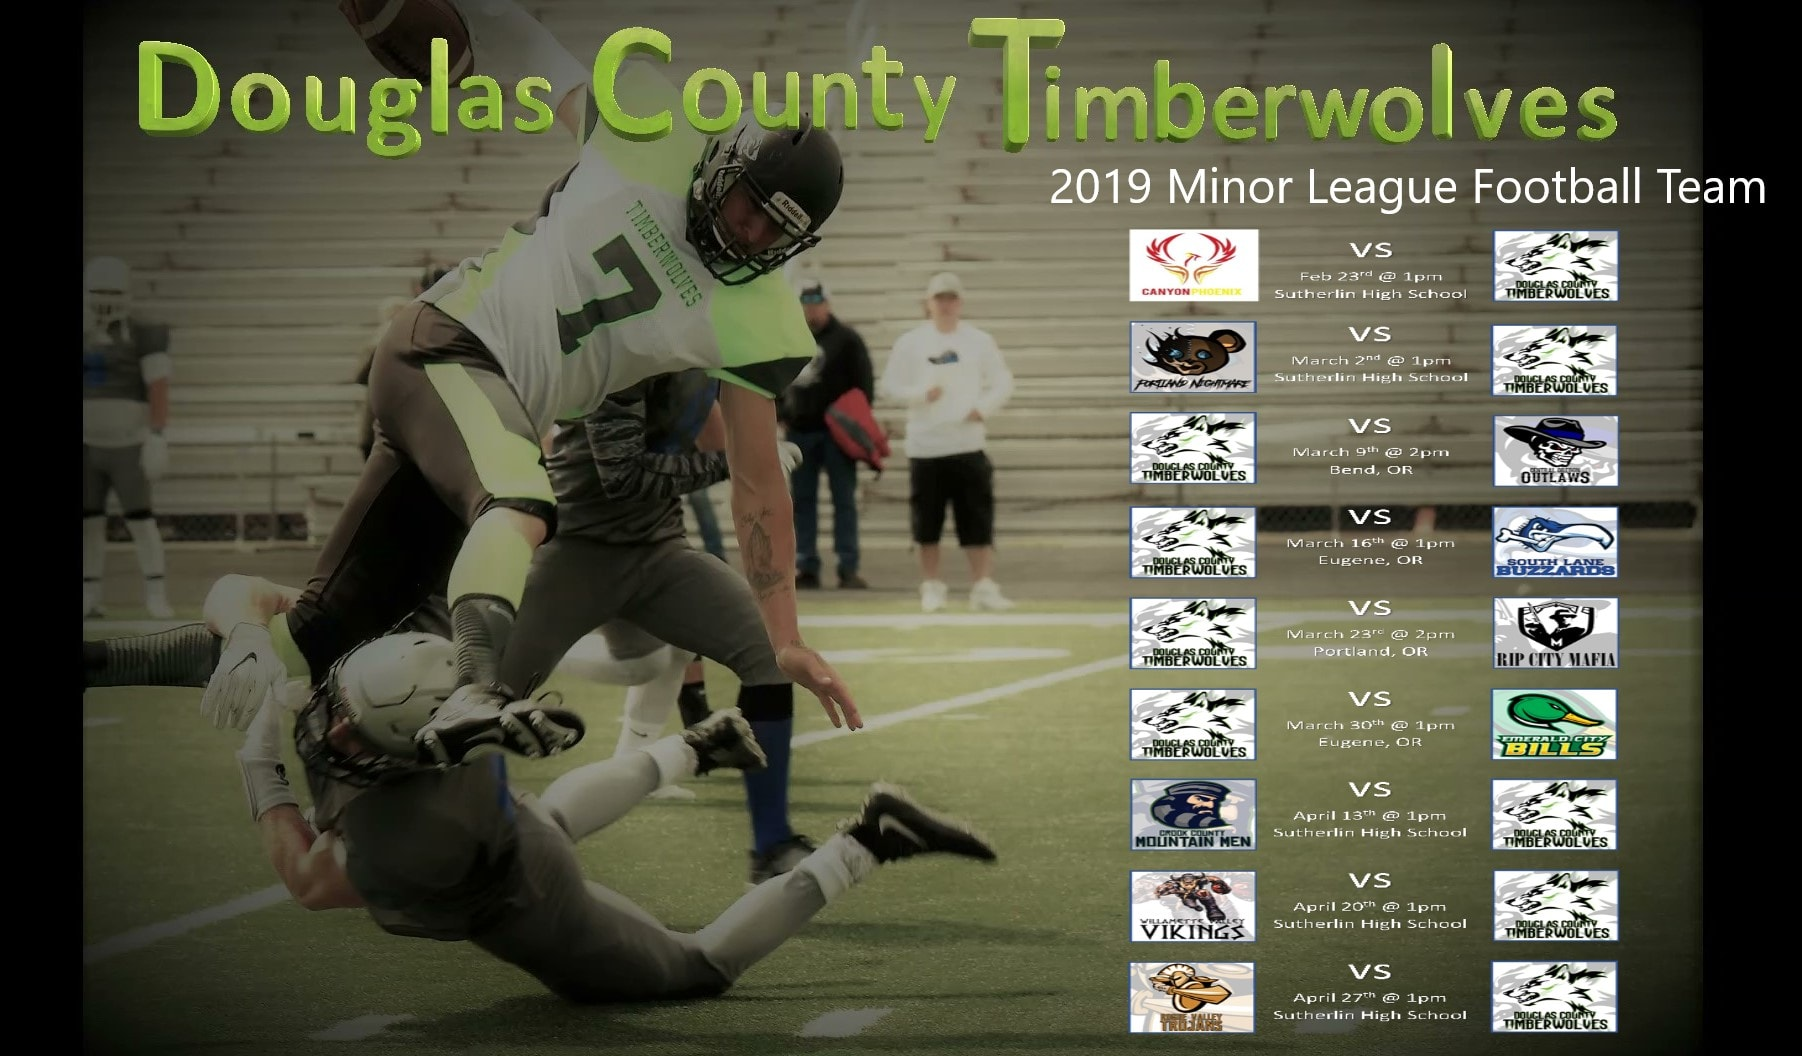 190209 Douglas County Timberwolves 2019 schedule